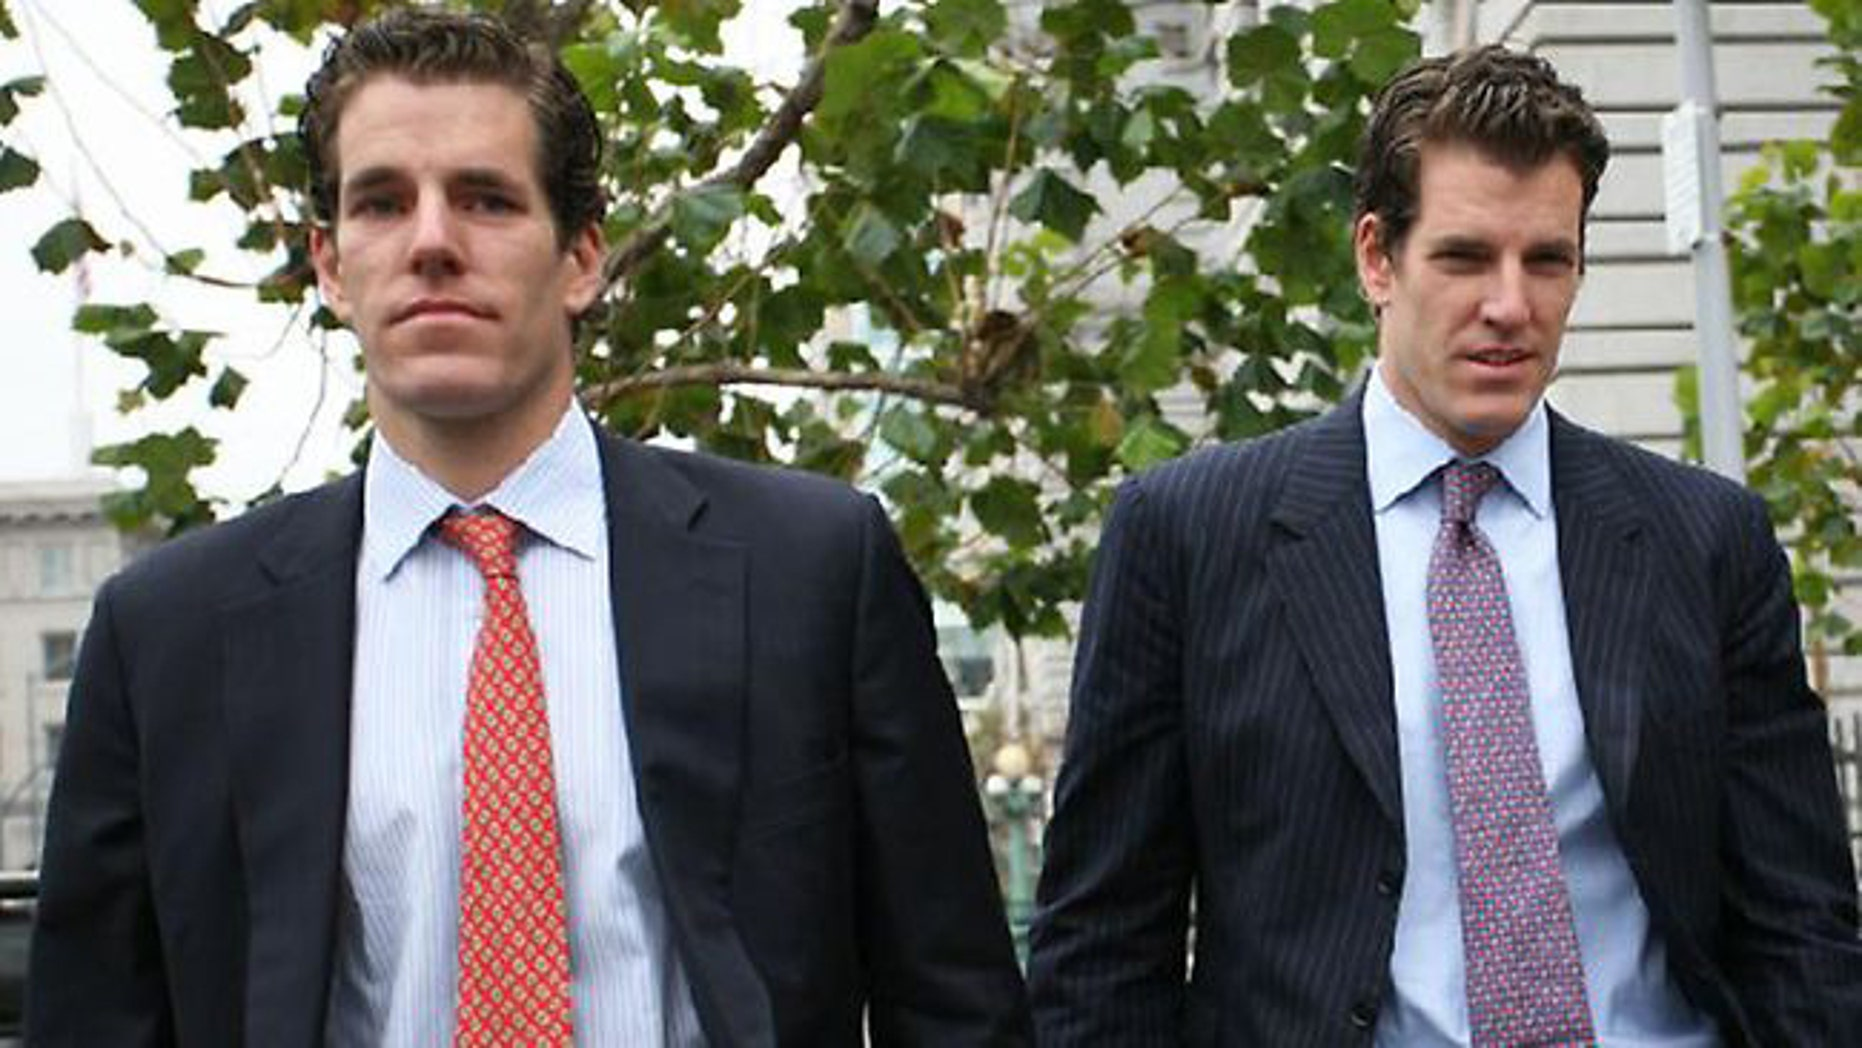 Cameron and Tyler Winklevoss have started a venture capital company.